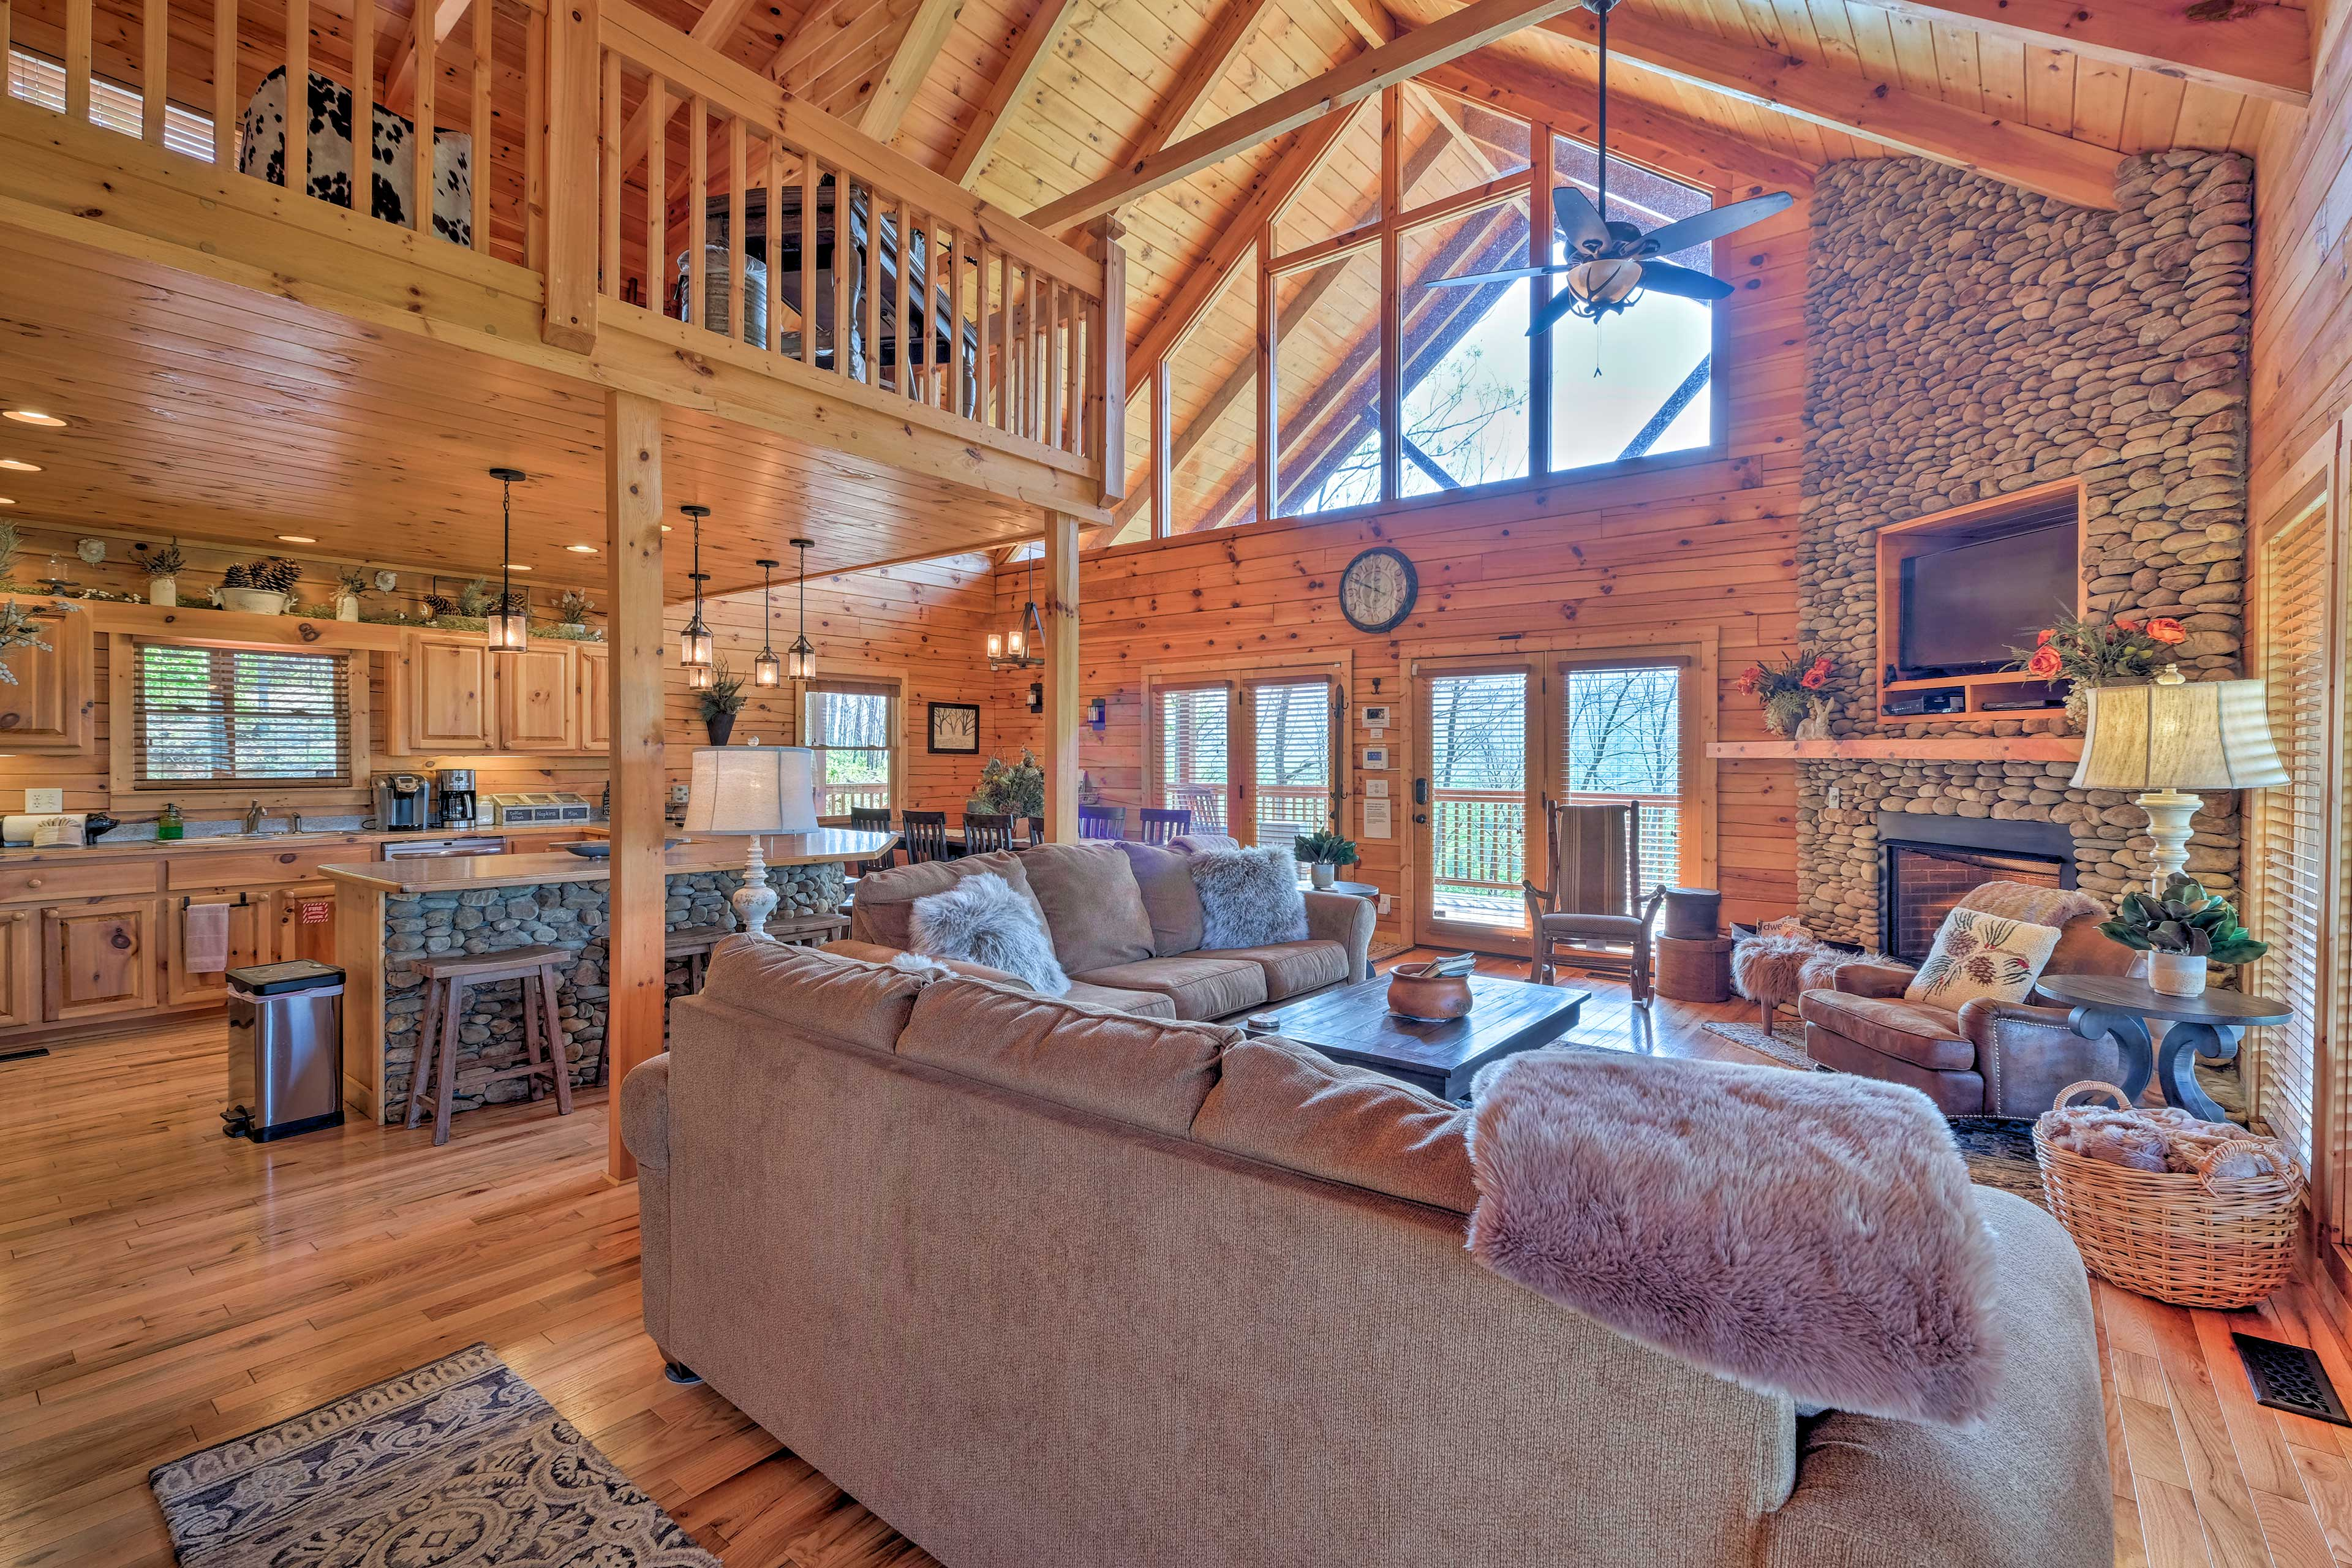 The great room offers stunning vaulted ceilings and a beautiful stone fireplace.